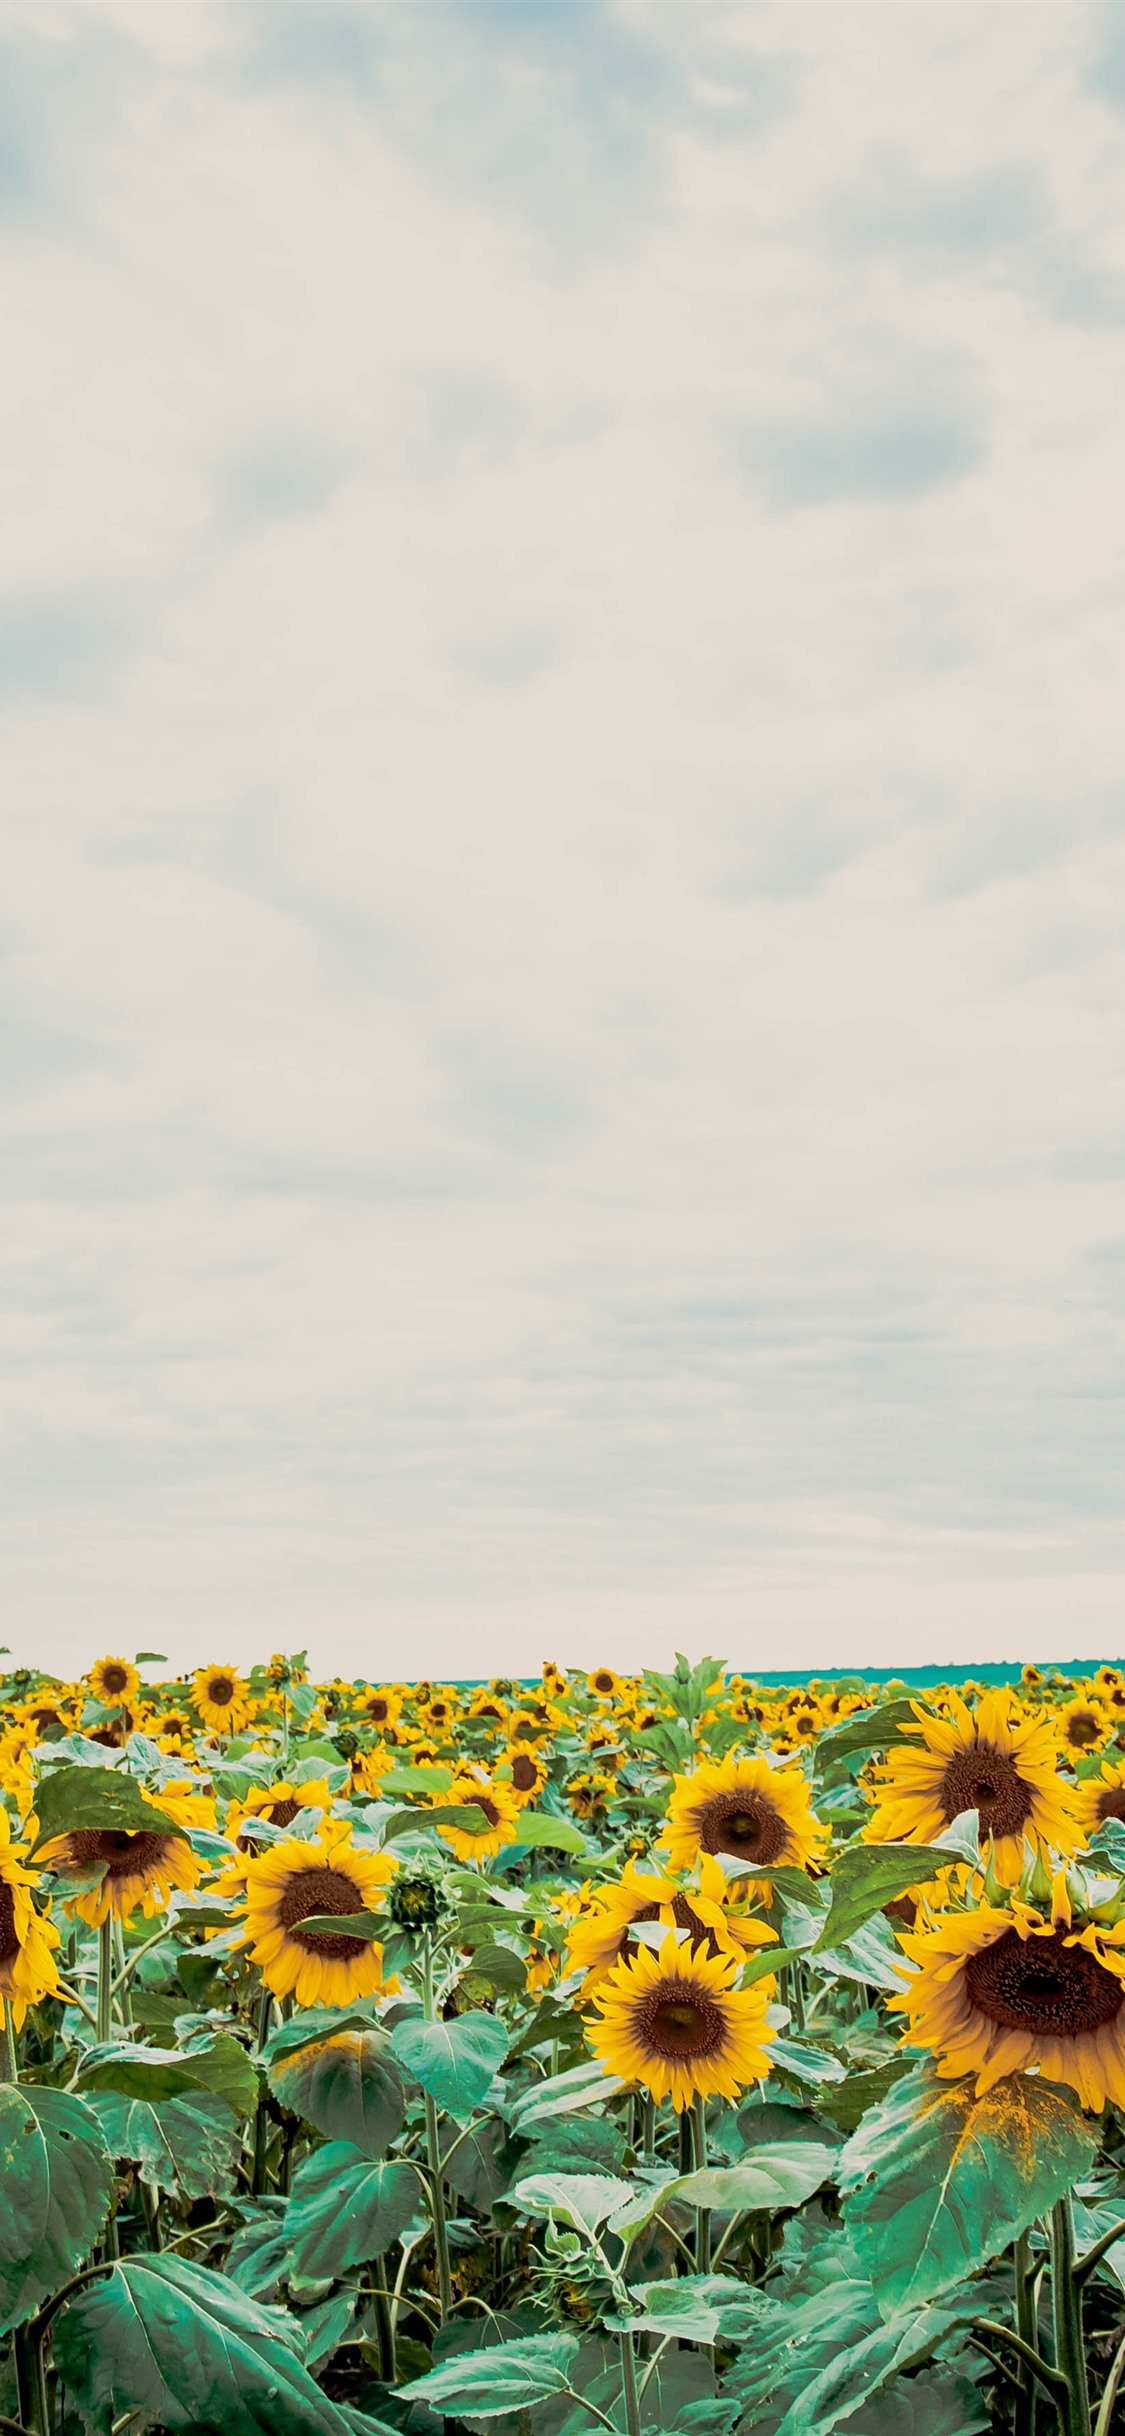 Sunflowers Blue Sky White Clouds 1125x2436 Iphone Xs X Wallpaper